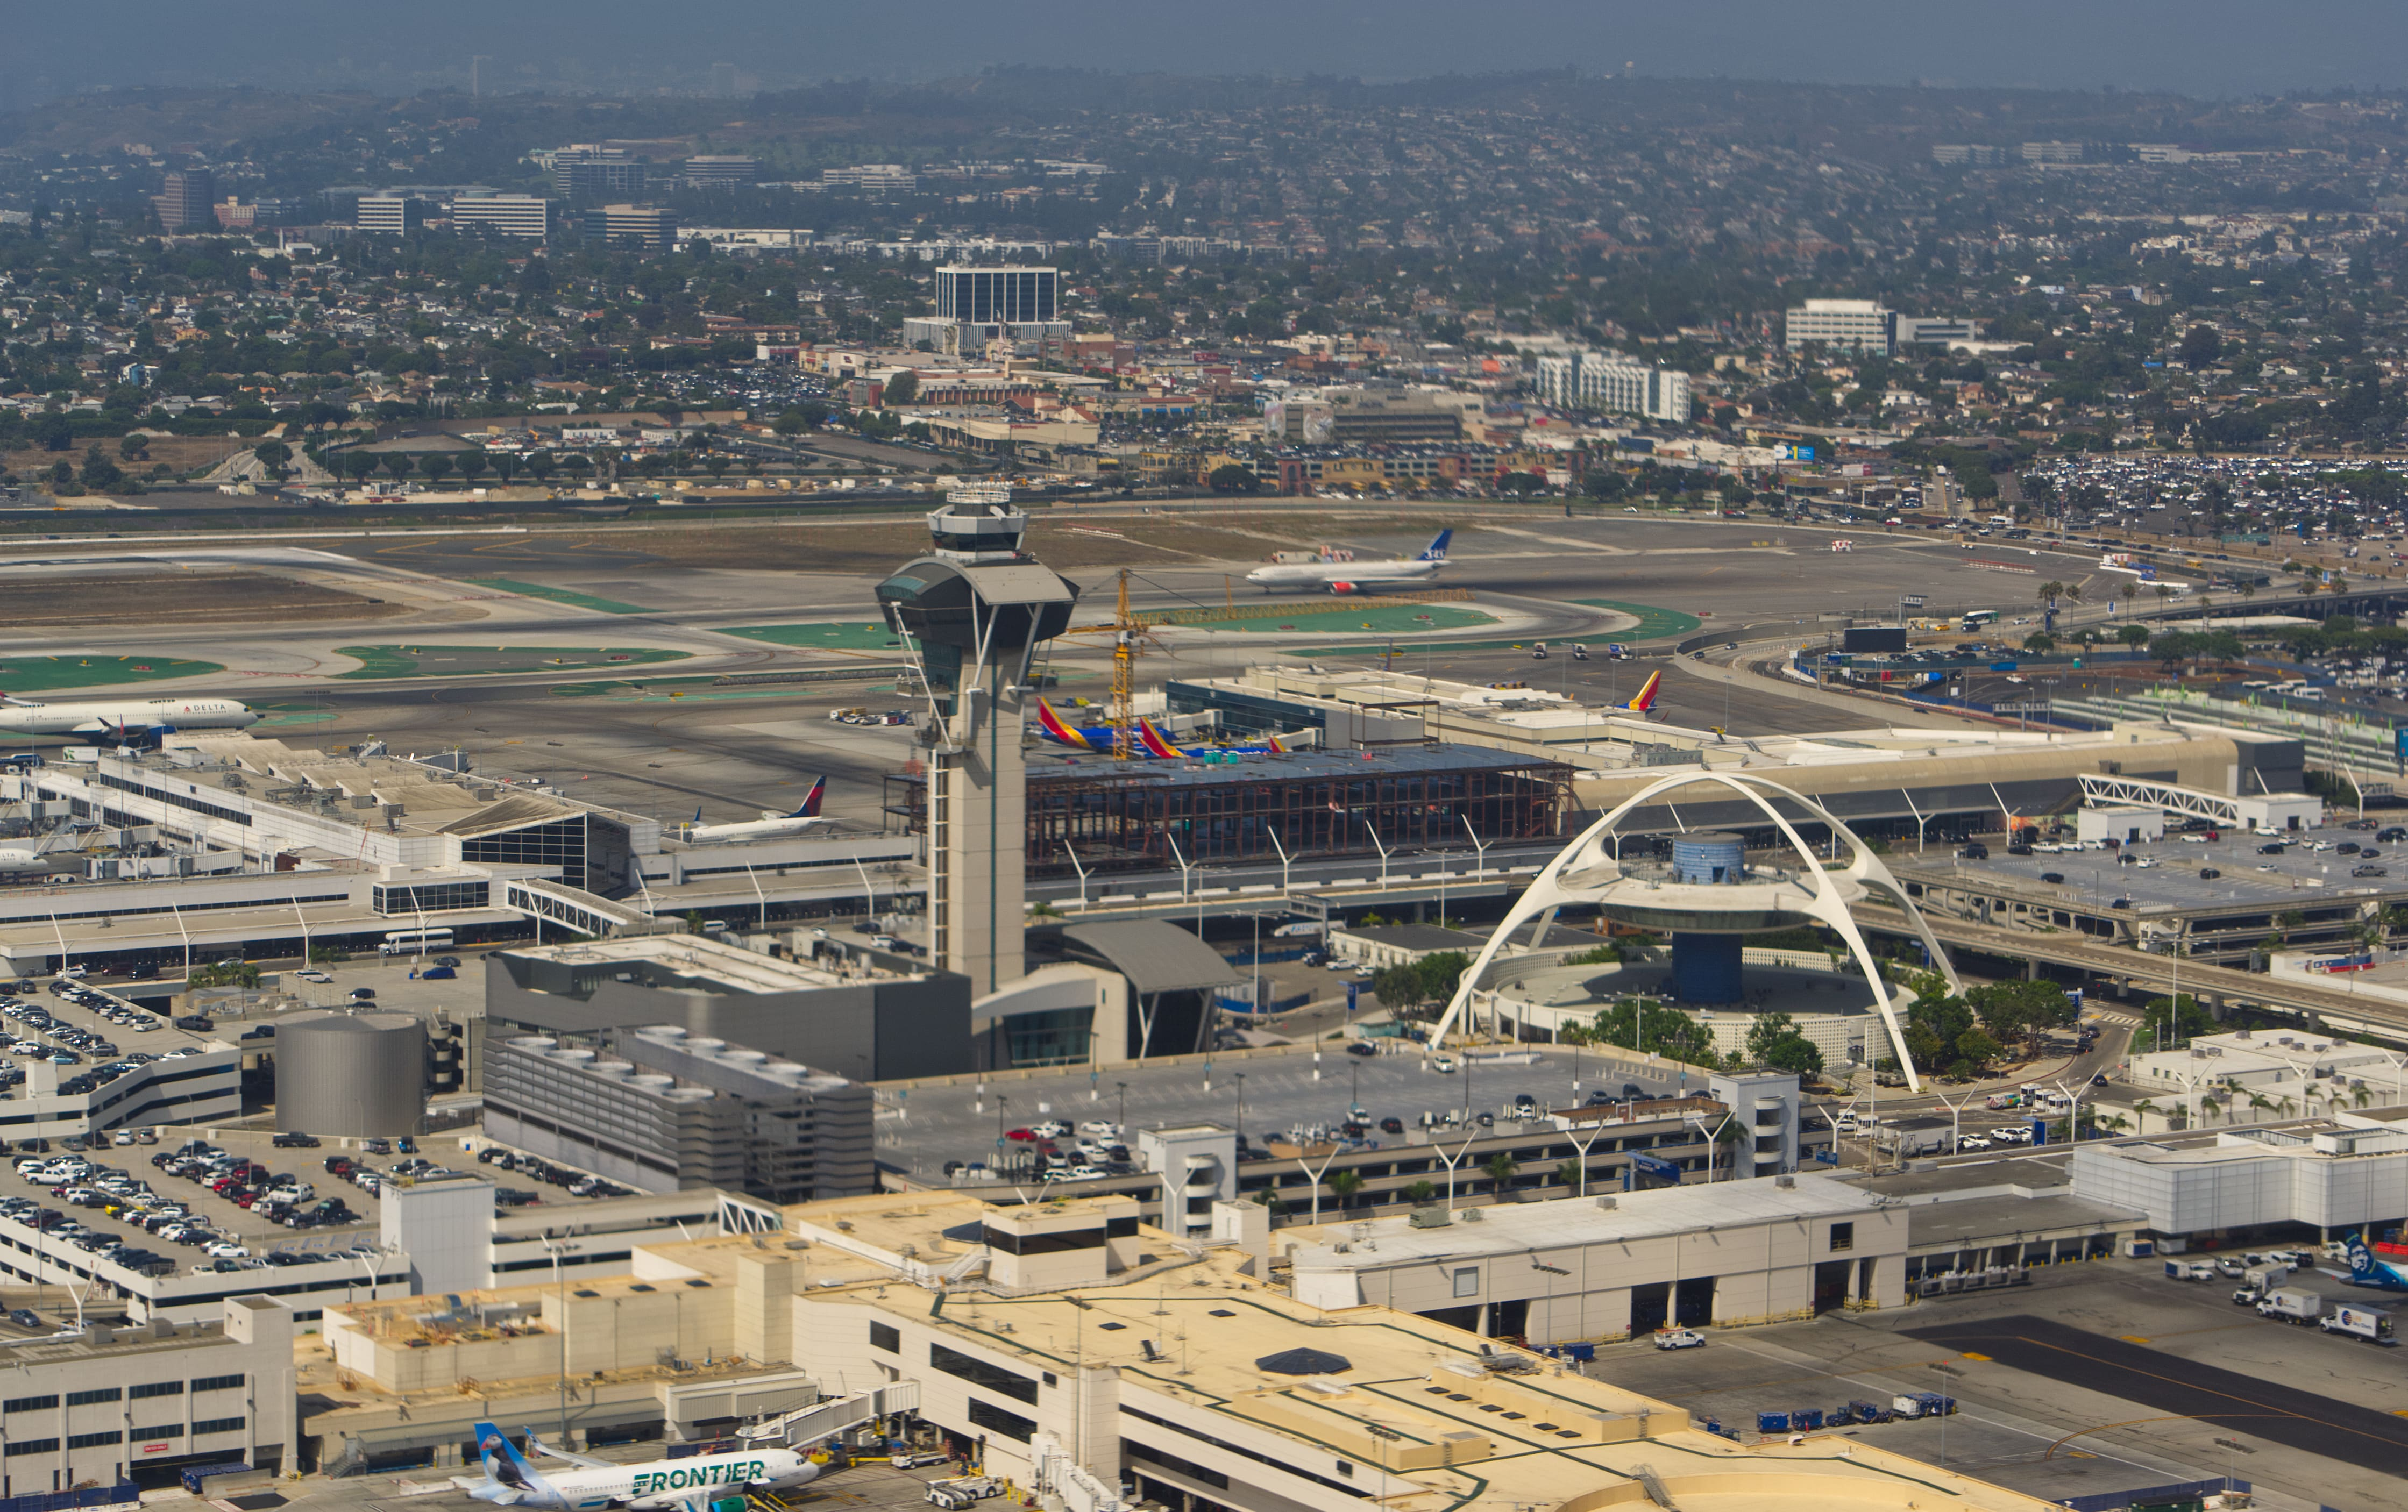 Aerial view of the Los Angeles International Airport